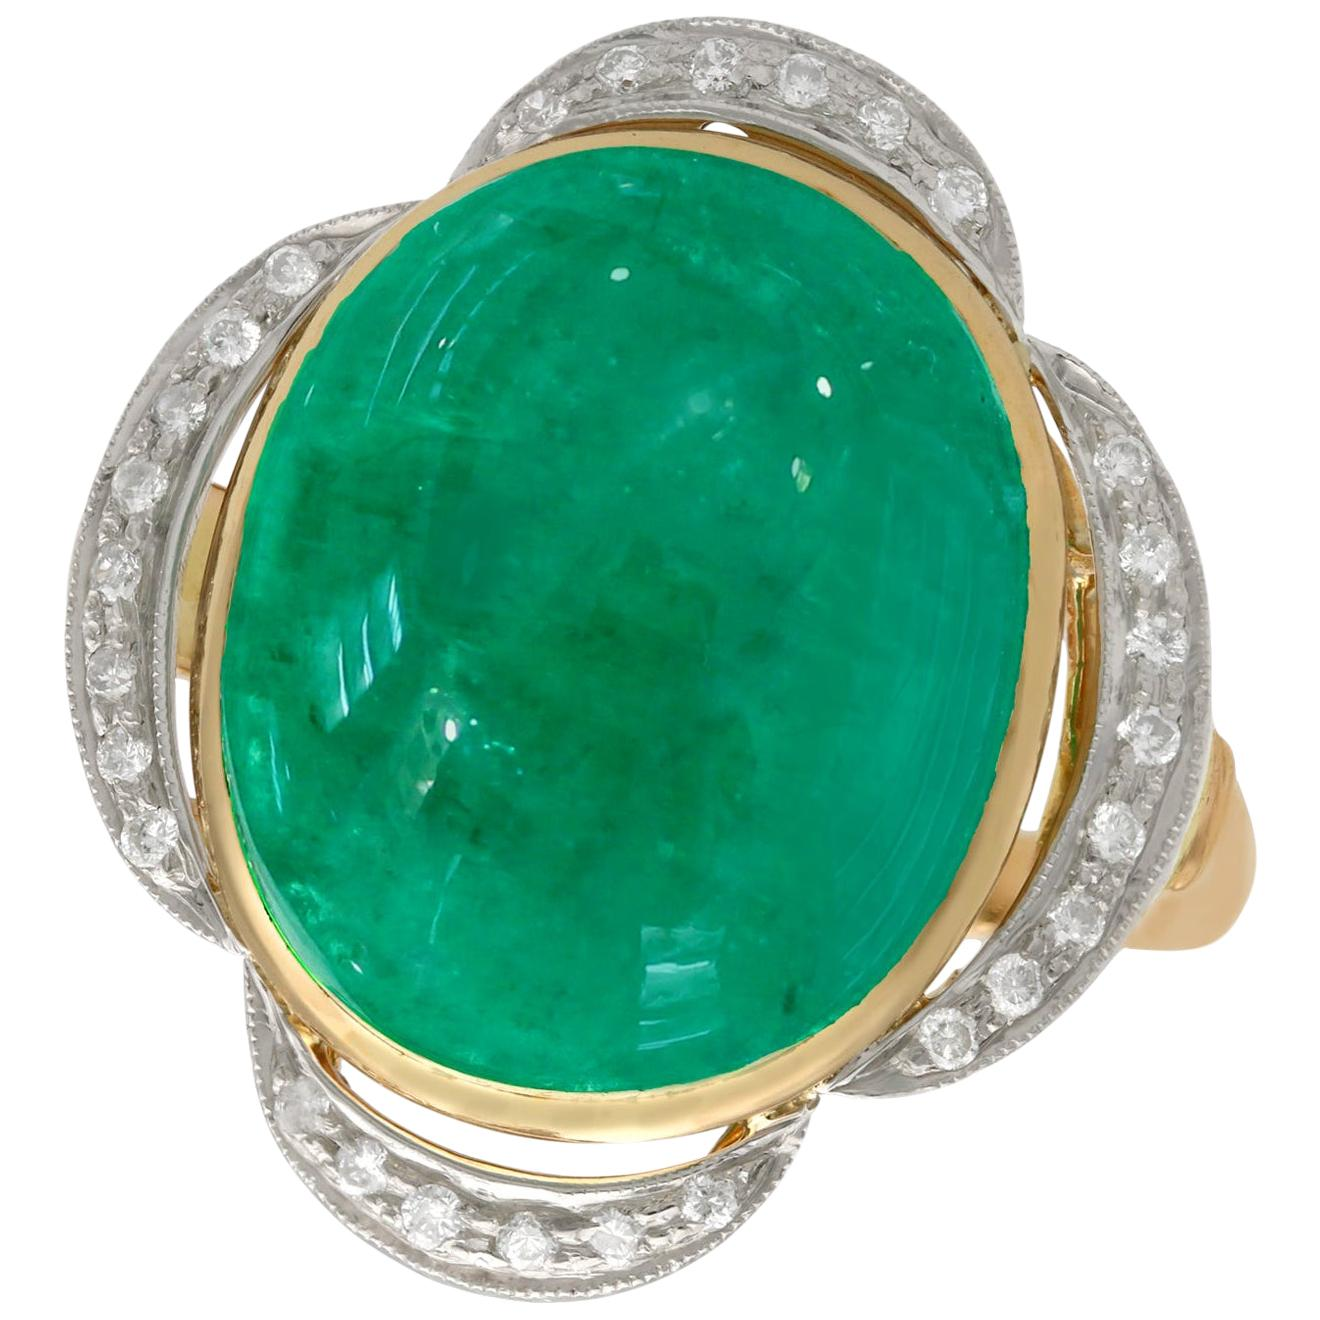 Vintage 1940s 14.5 Carat Emerald and Diamond Yellow Gold Cocktail Ring